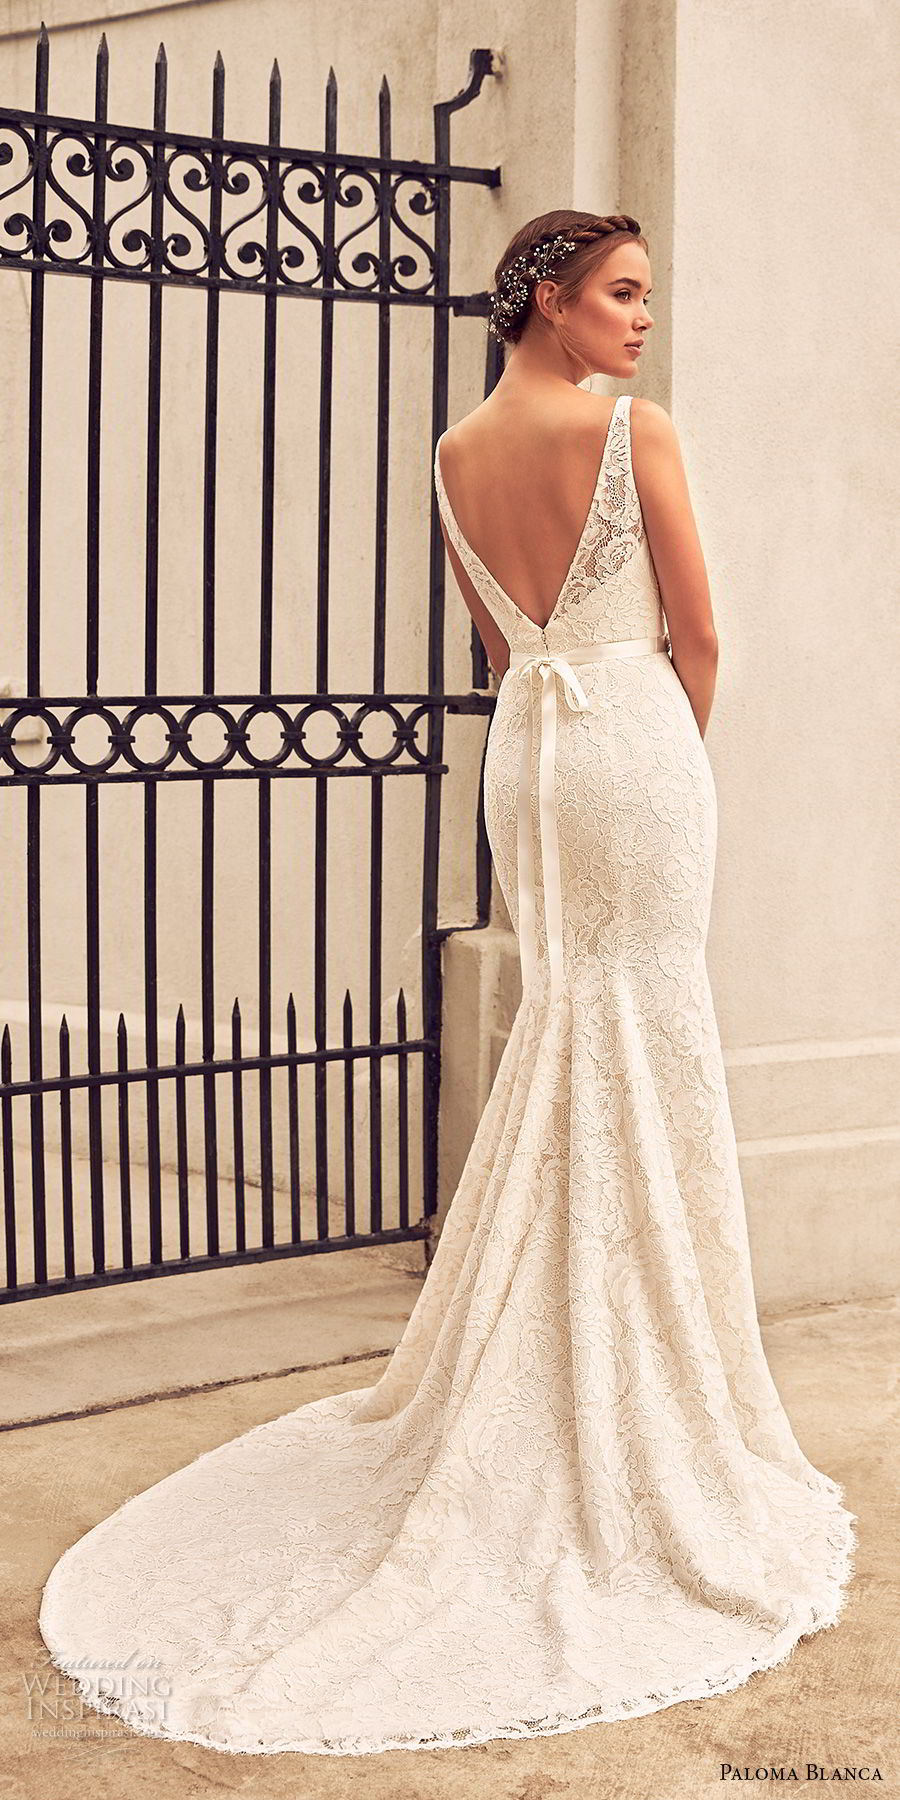 paloma blanca spring 2018 bridal sleeveless illusion bateau sweetheart neckline full embellishment side slit fit and flare wedding dress v back chapel train (15) bv